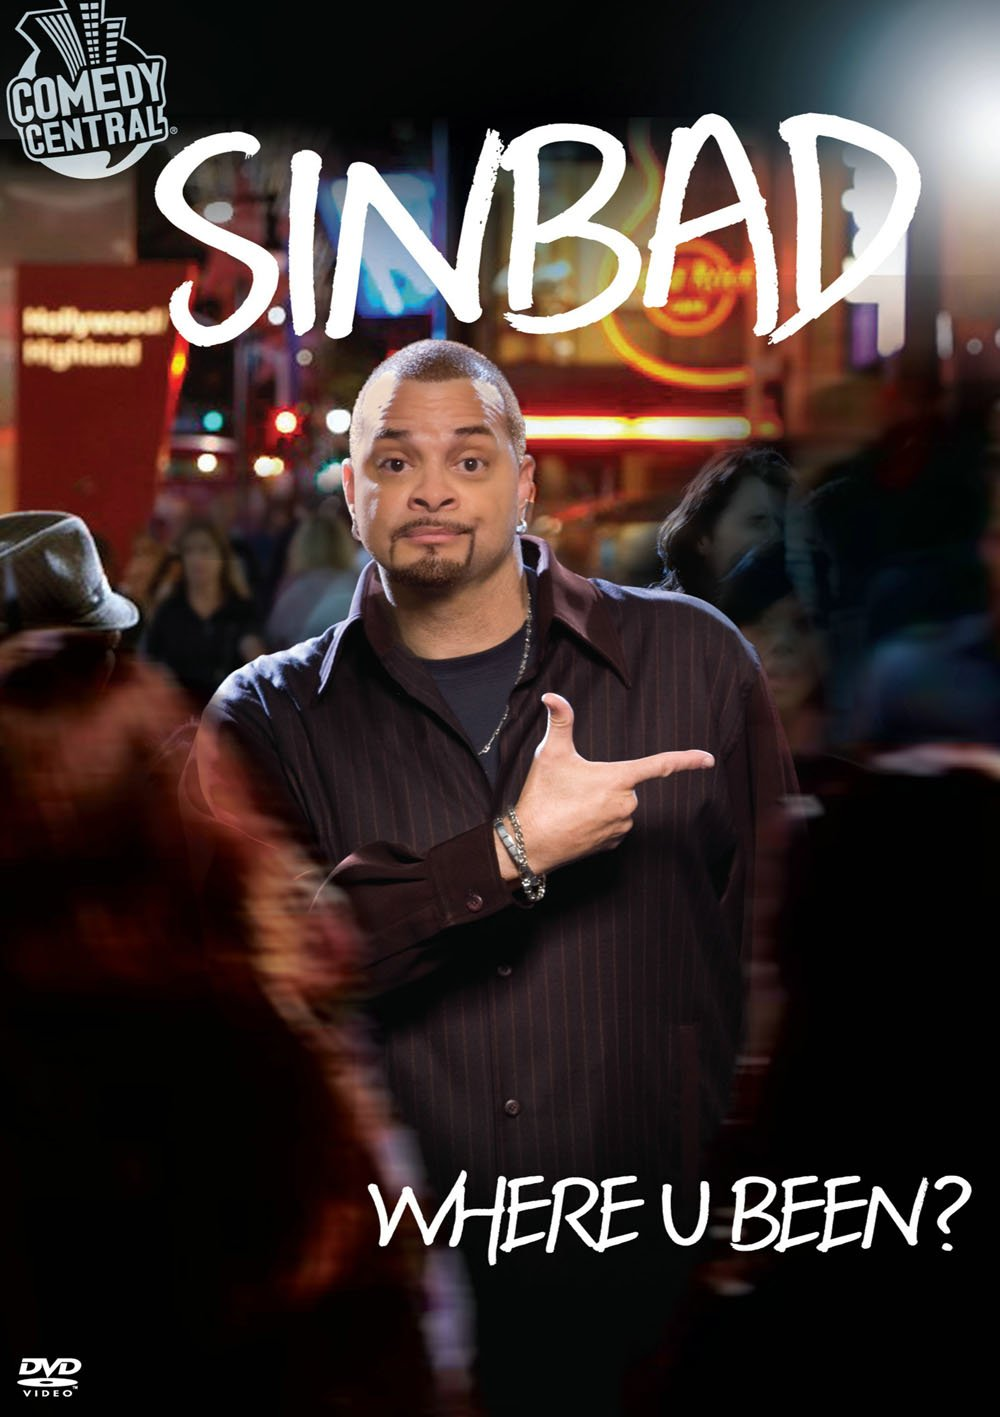 Sinbad: Where U Been? by Comedy Central